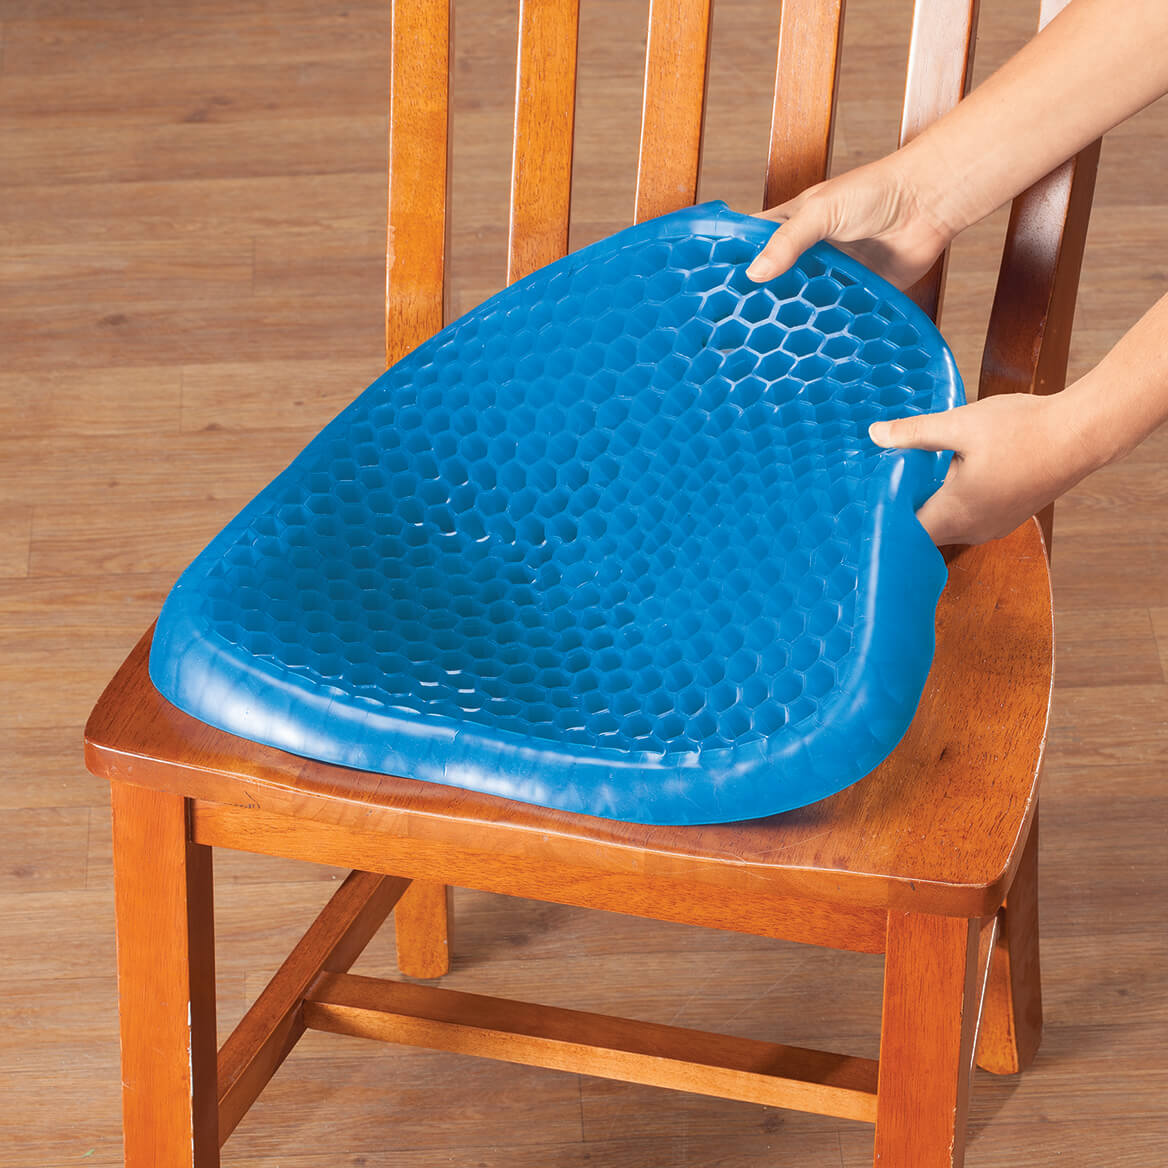 gel cushion for chair clear acrylic rail compact seat walter drake honeycomb with cover by livingsure 365962